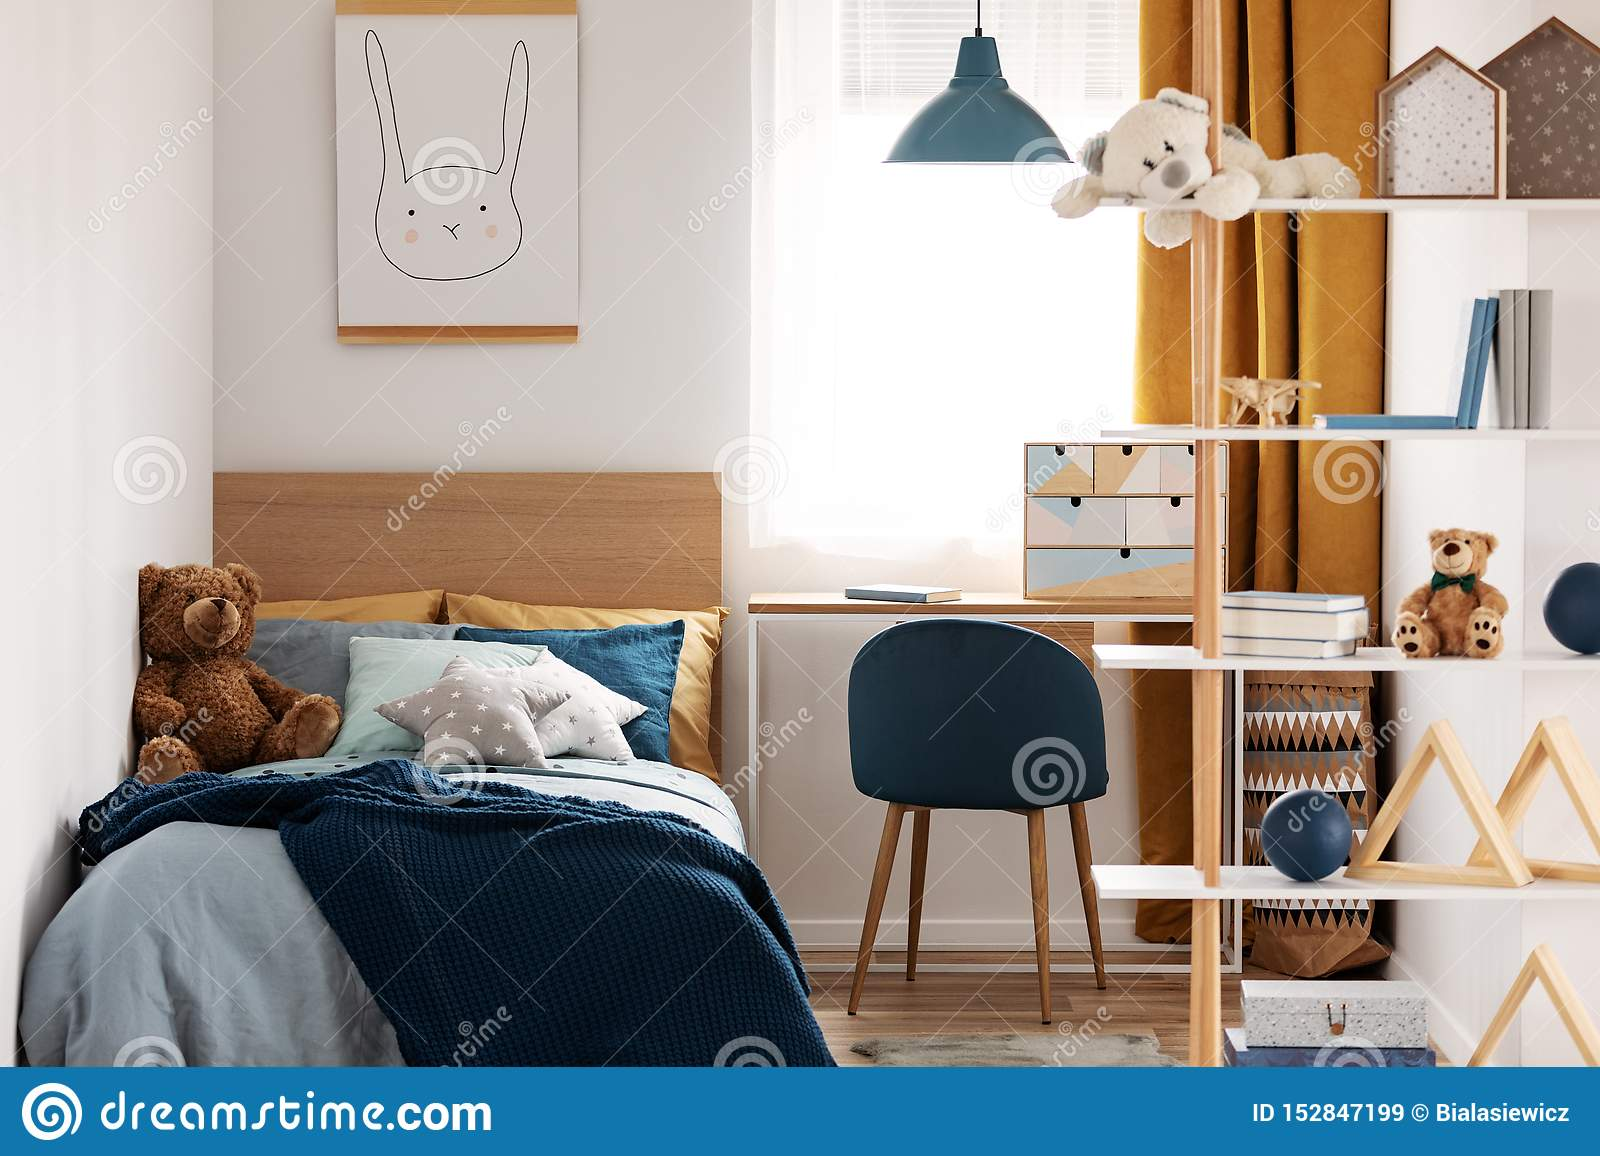 Bright Bedroom Interior With Single Bed With Turquoise ...